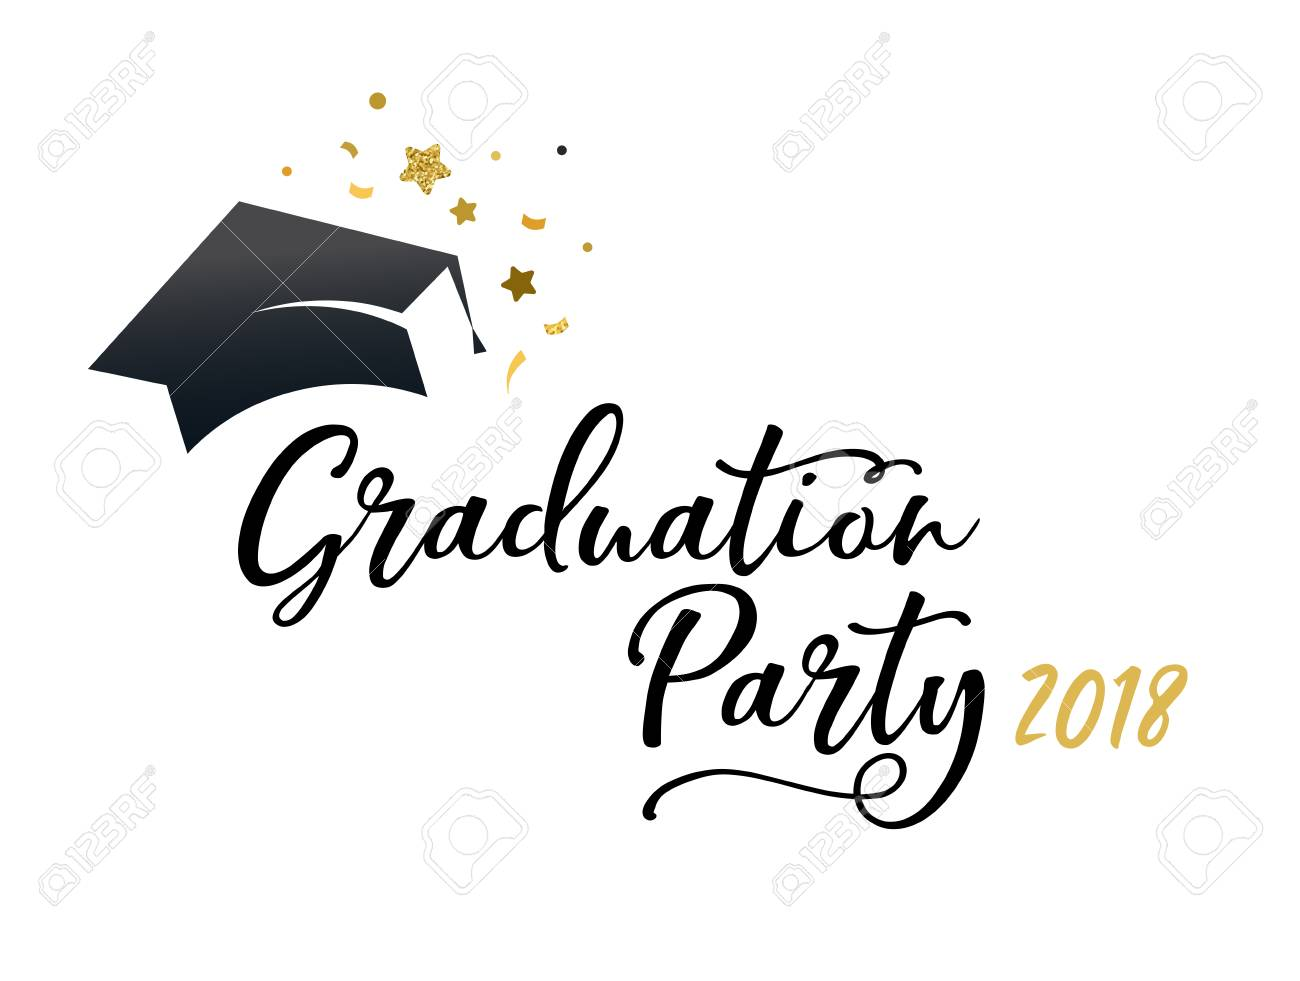 Graduation Class Of 2018, Party Invitations Isolated On Plain ...